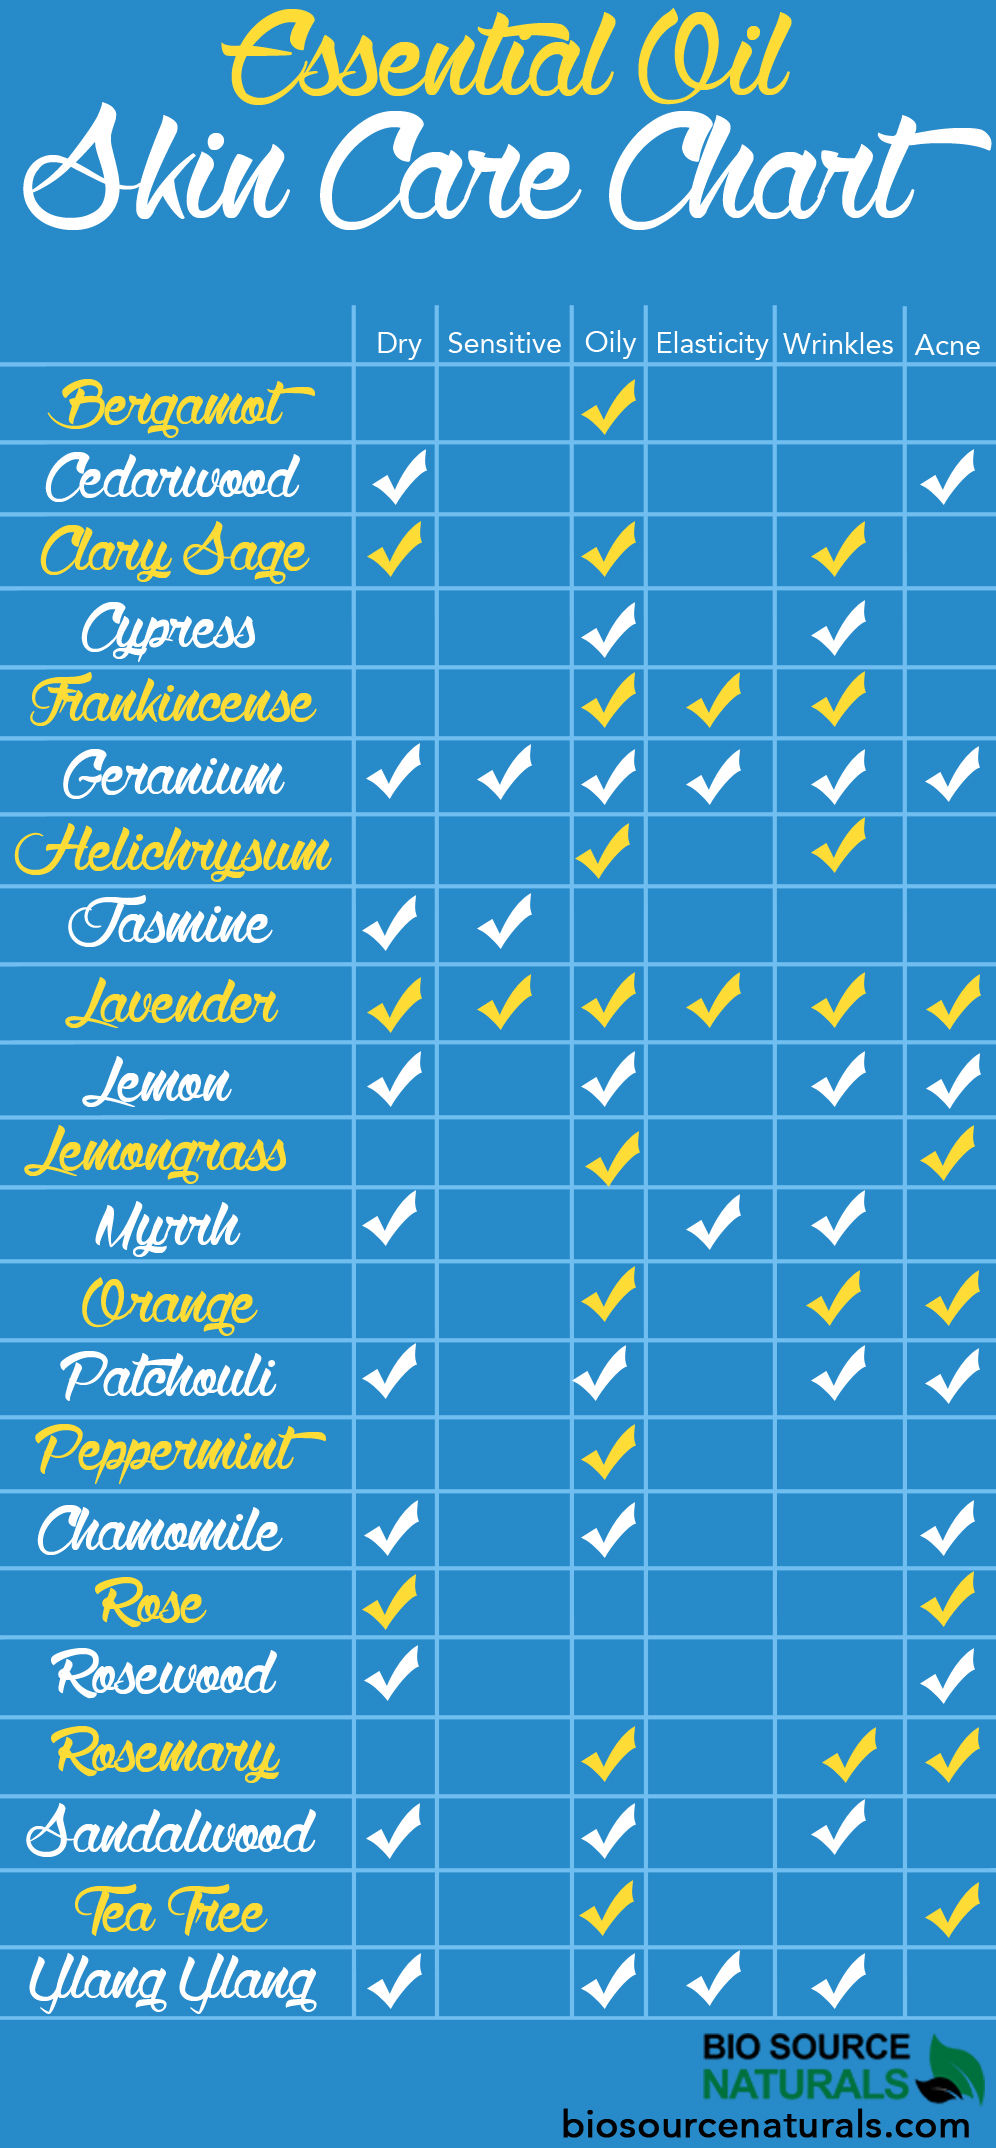 Essential Oil Skin Care Chart Pictures Photos And Images